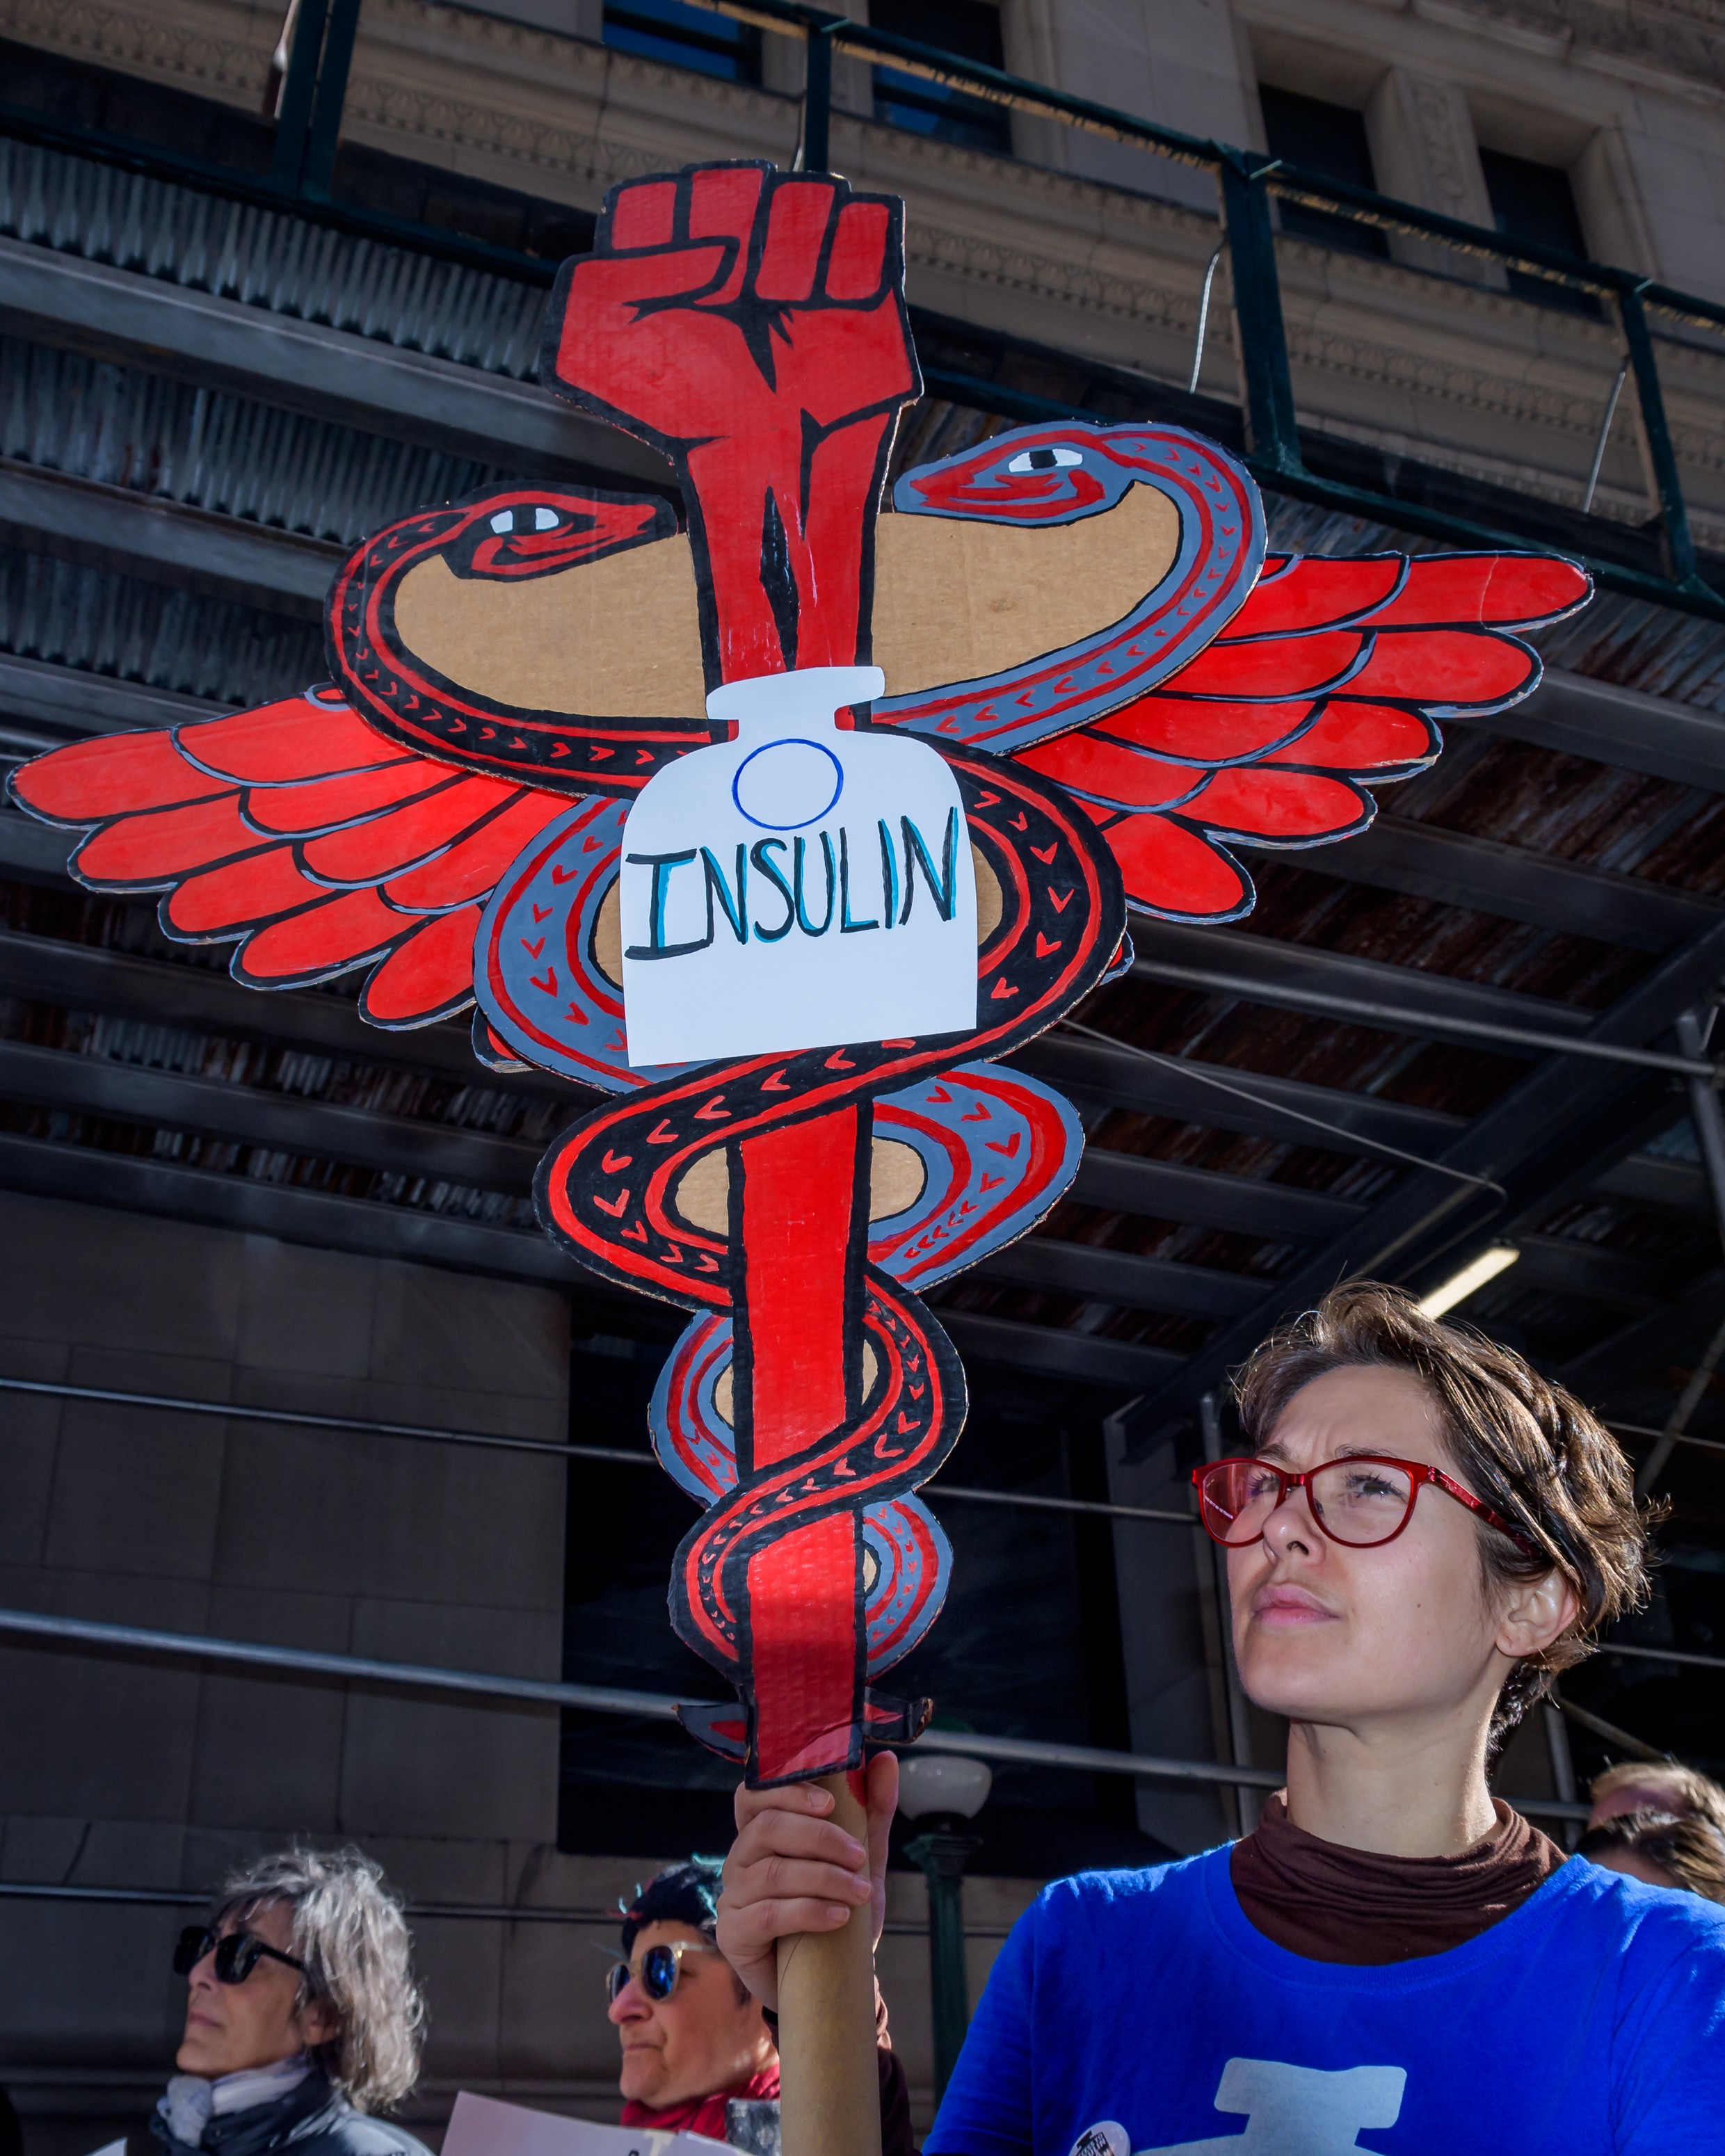 Participant holding a protest sign at a rally for affordable insulin for people with diabetes.